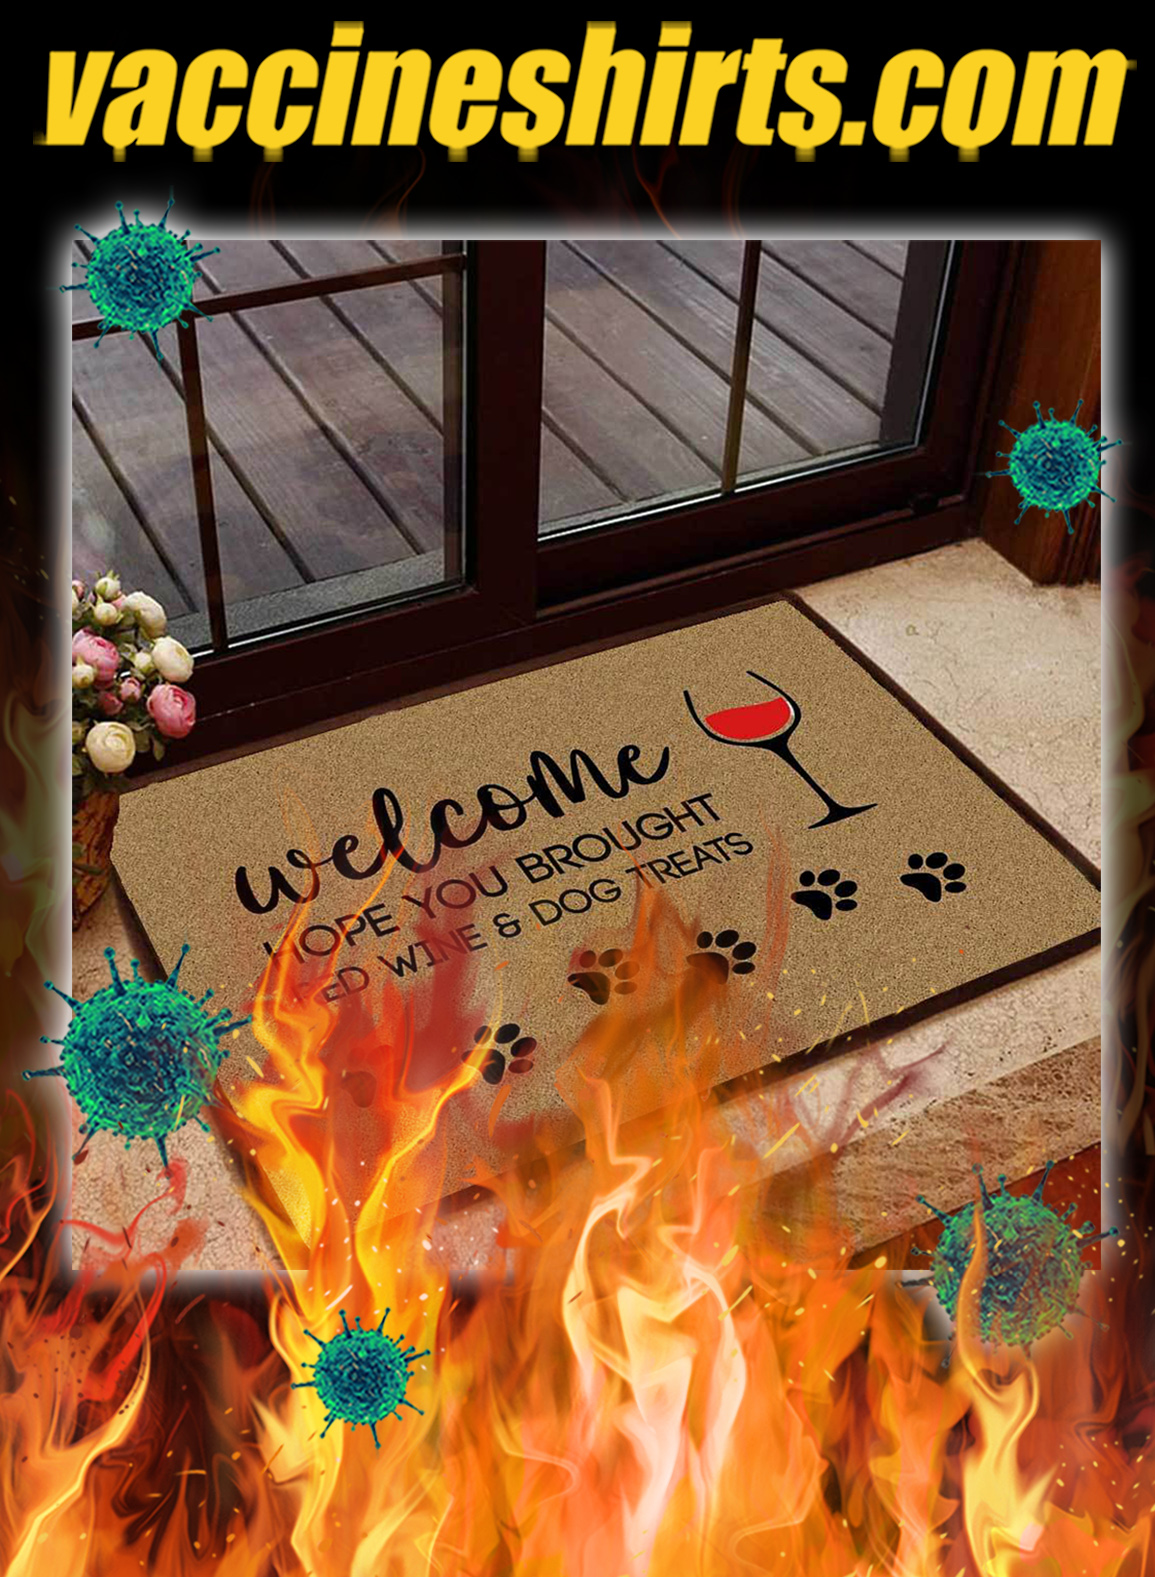 Welcome hope you brought red wine and dog treats doormat- pic 1